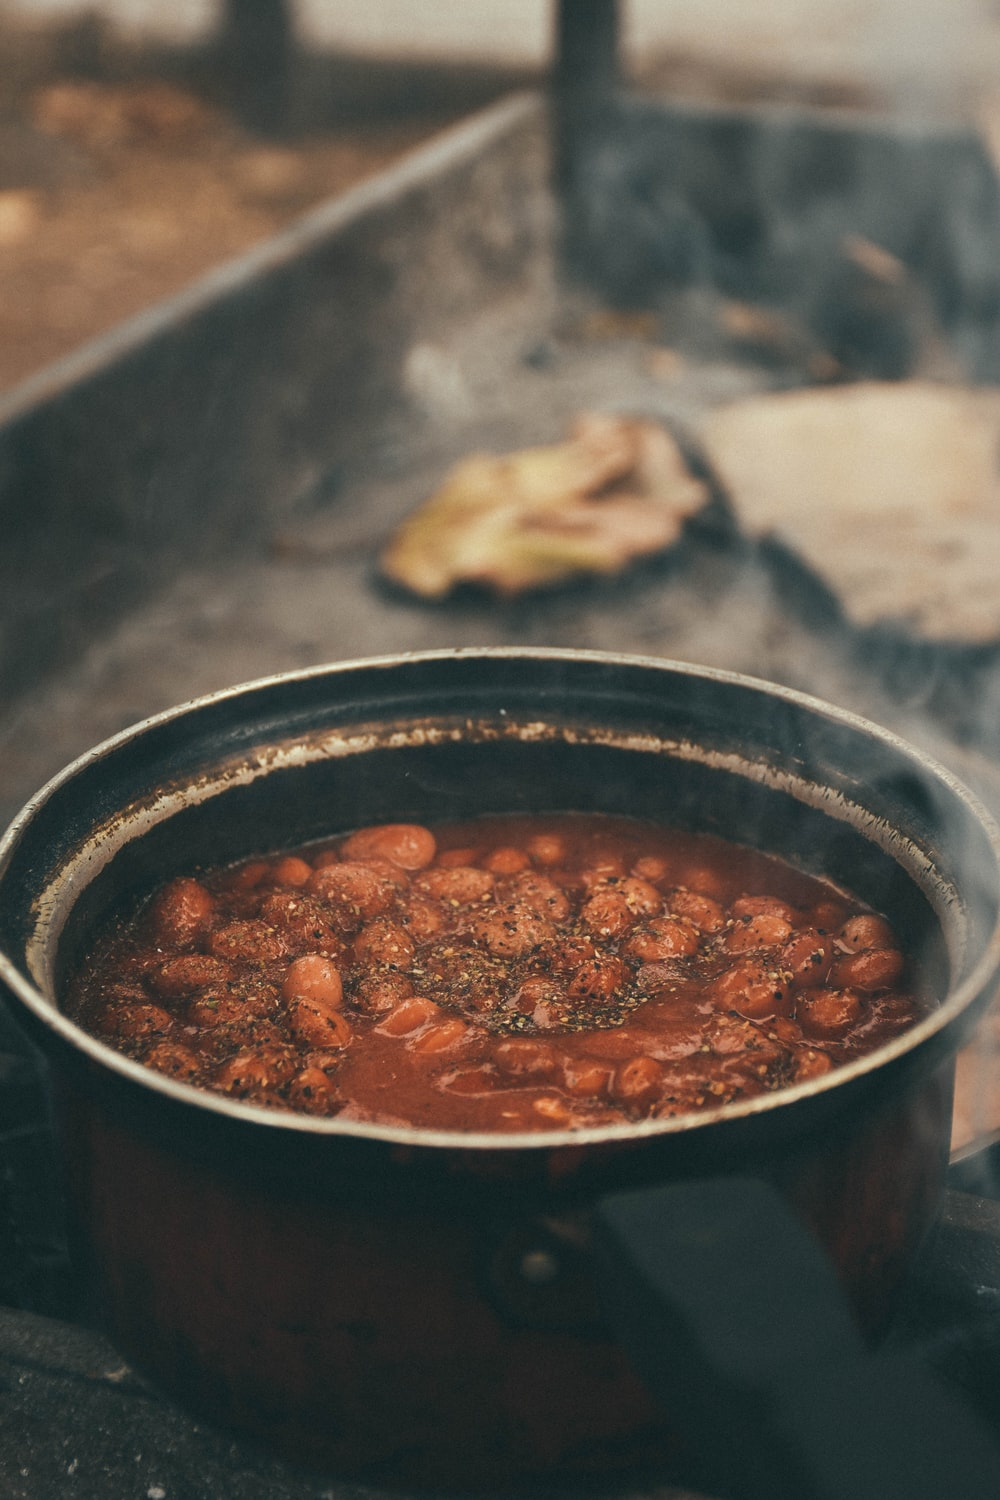 cooked food in black cooking pot